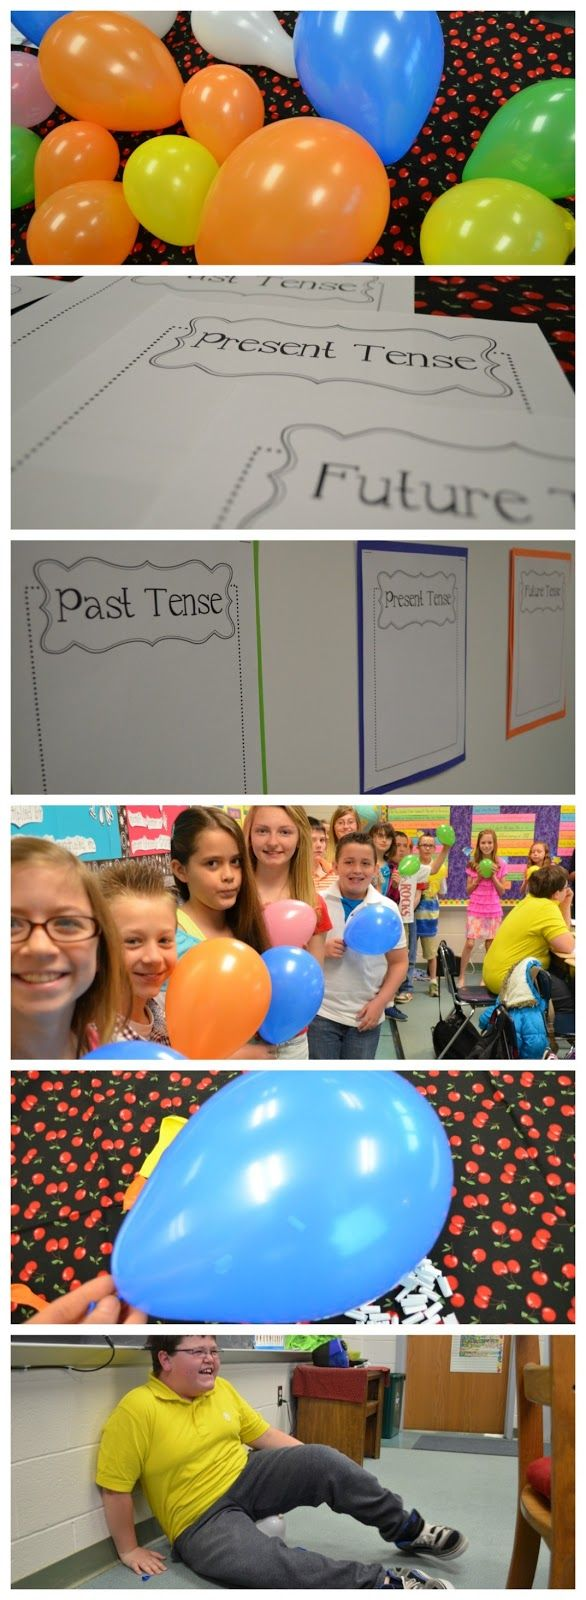 Verb Balloon Pop – Students pop balloons that contain paper slips with verbs that must be taped onto the correct tense. This could be a race or just for fun.